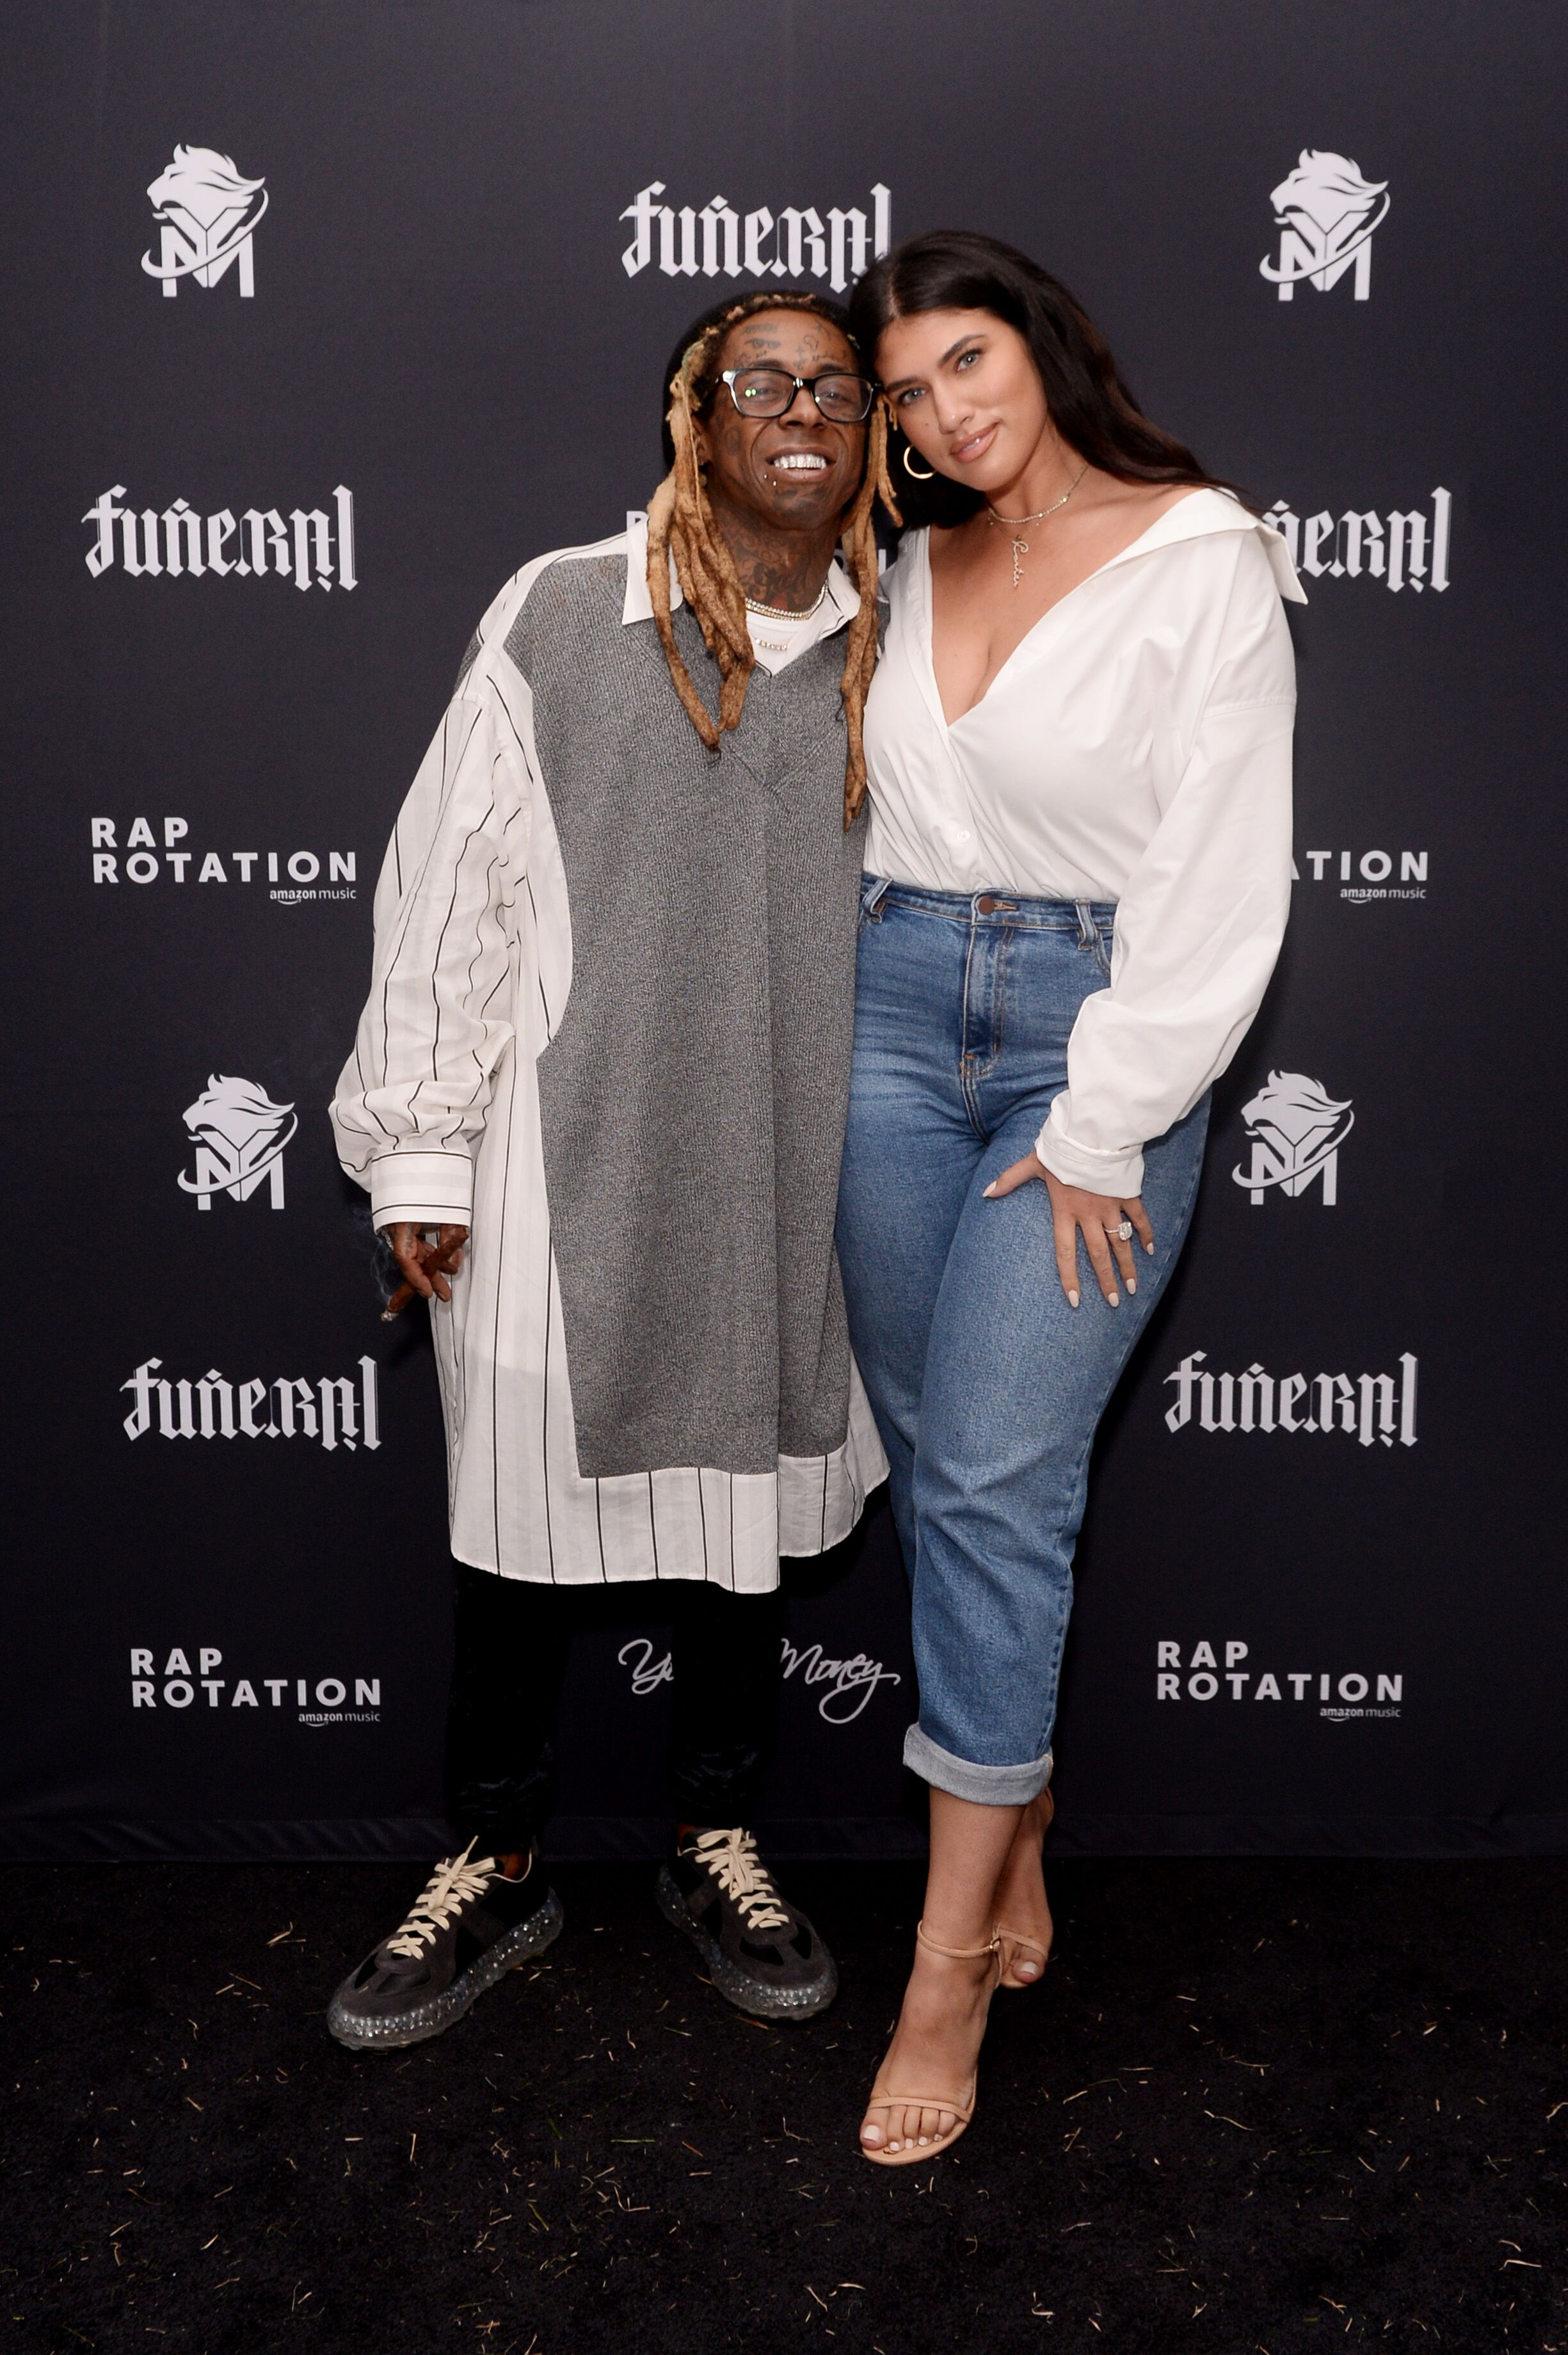 """Lil Wayne and La'Tecia attend the """"Funeral"""" Album Launch Party 